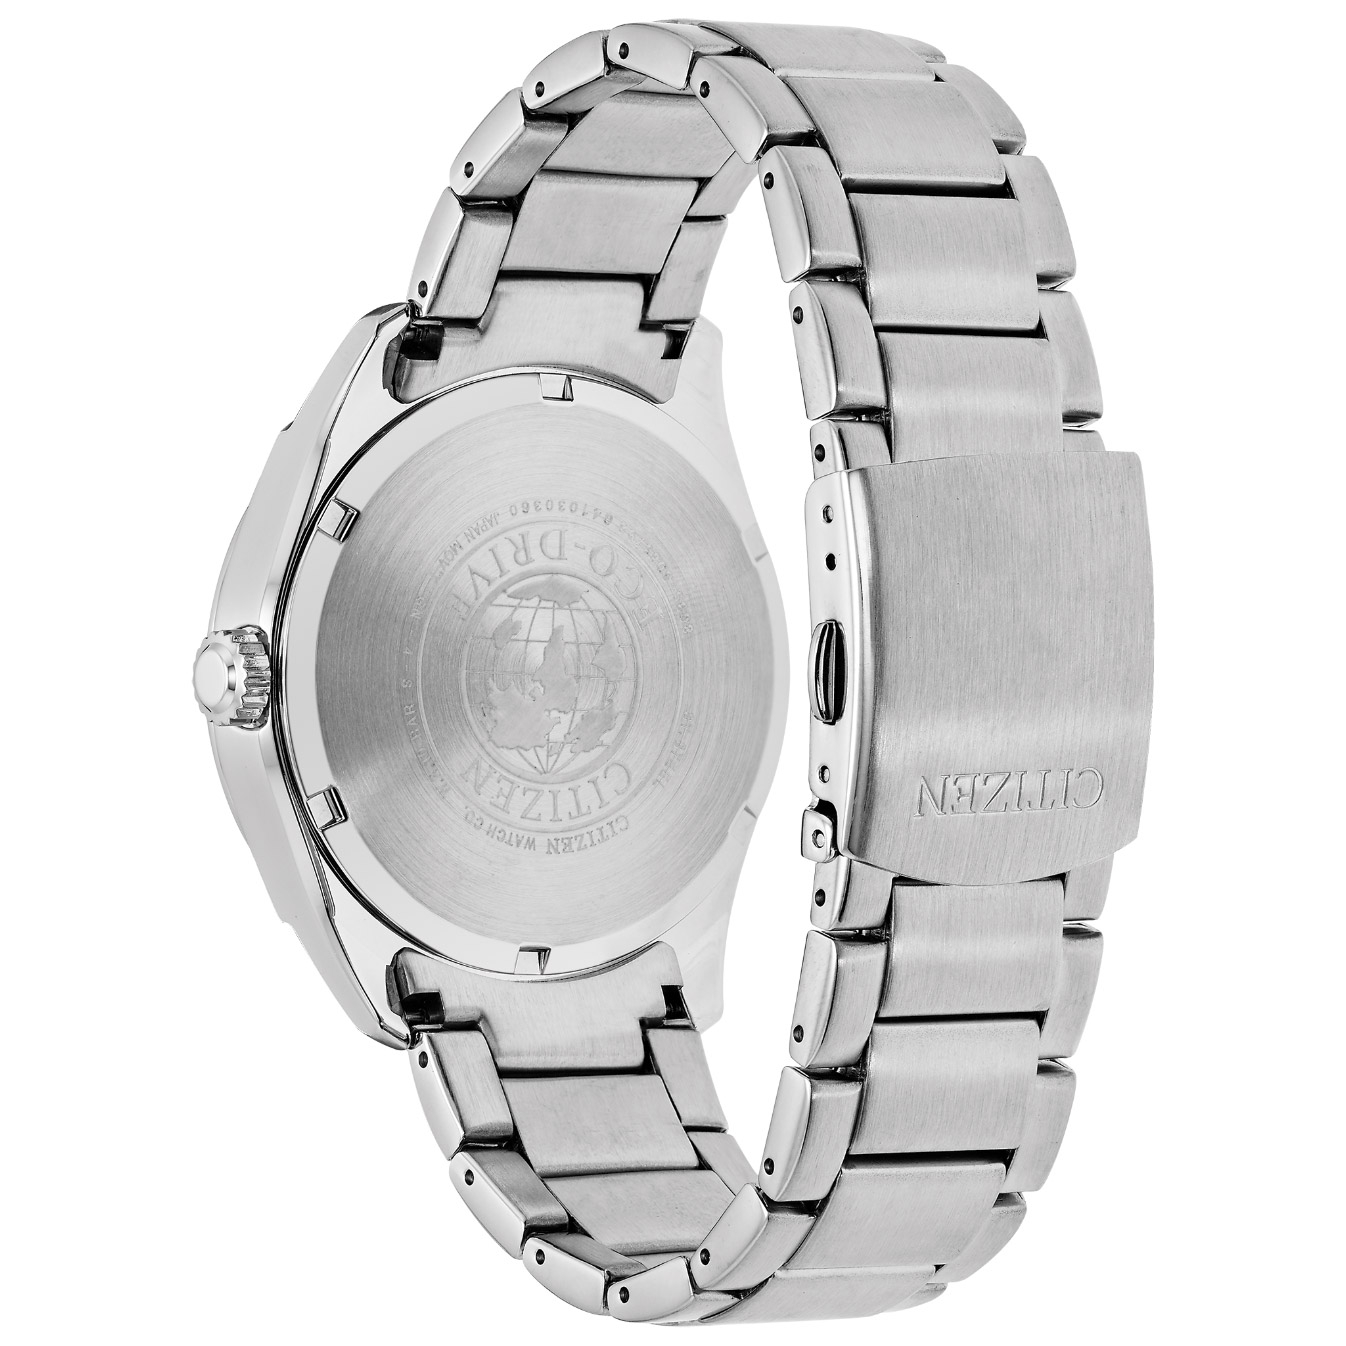 AO9020-84E Citizen Mens Dress Eco-Drive Watch Alternative View 2